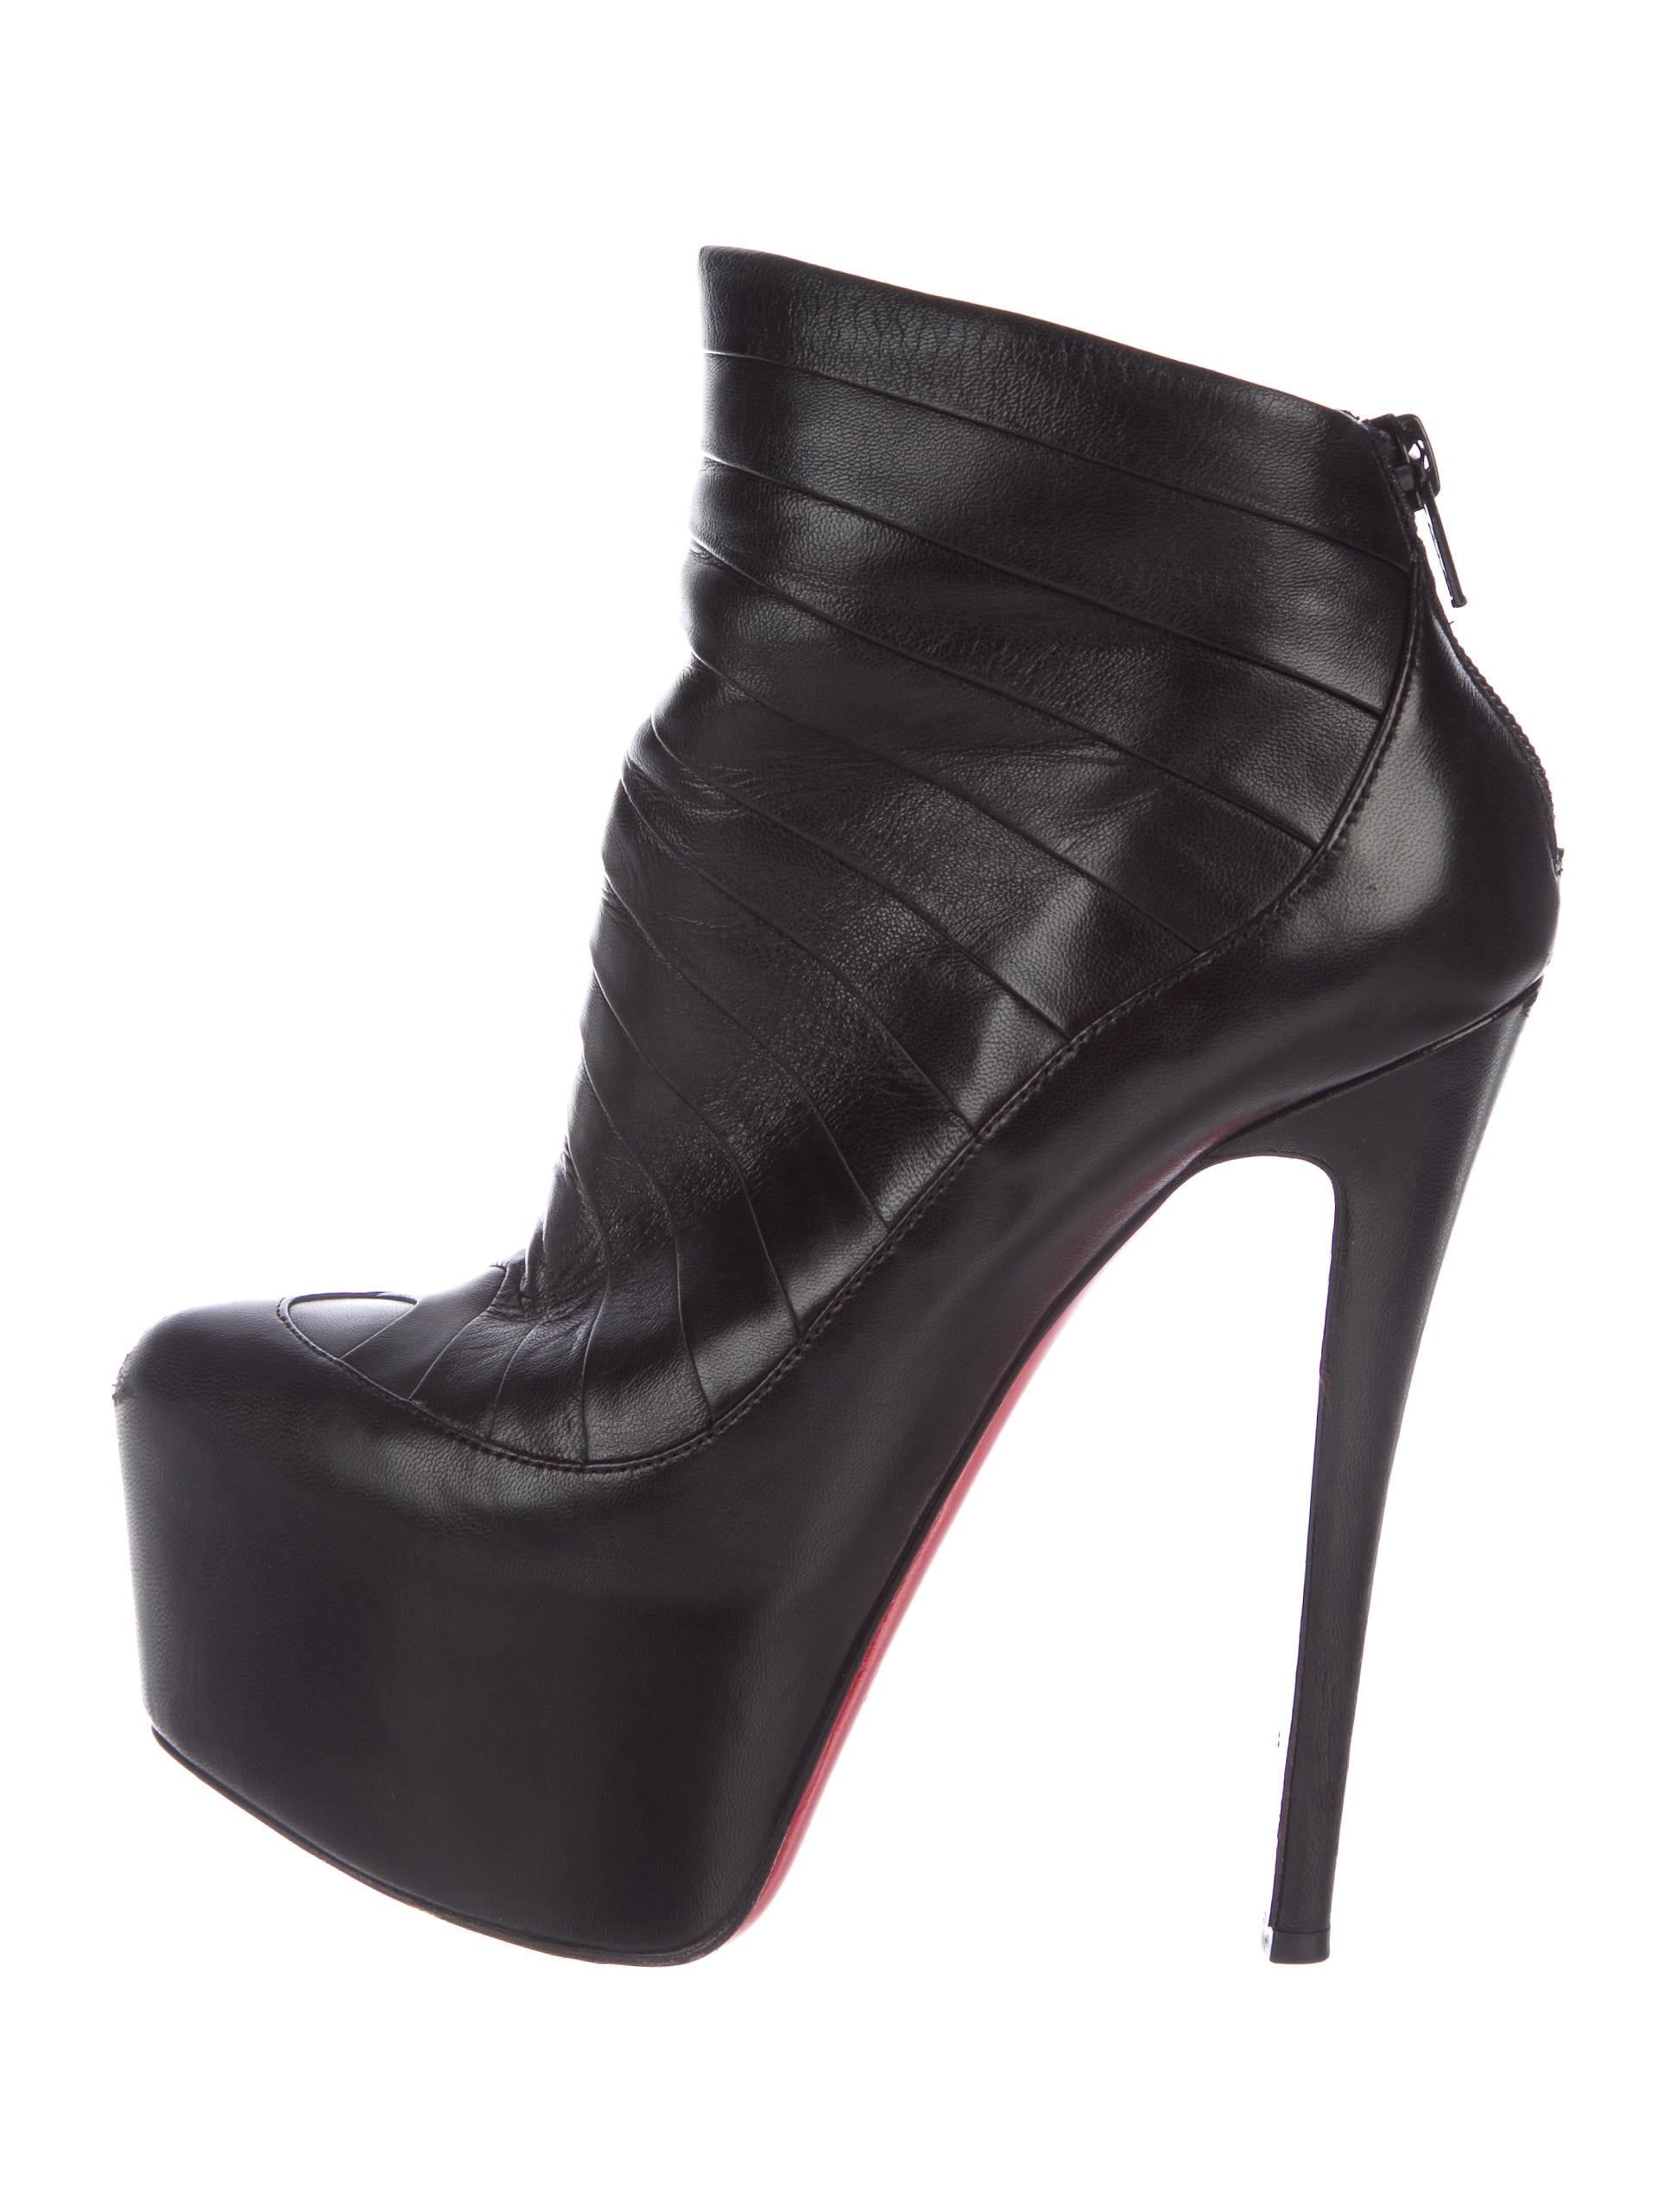 100% authentic 100% authentic for sale Christian Louboutin Amor 160 Platform Booties buy cheap wiki best sale authentic for sale p8tl18QHp